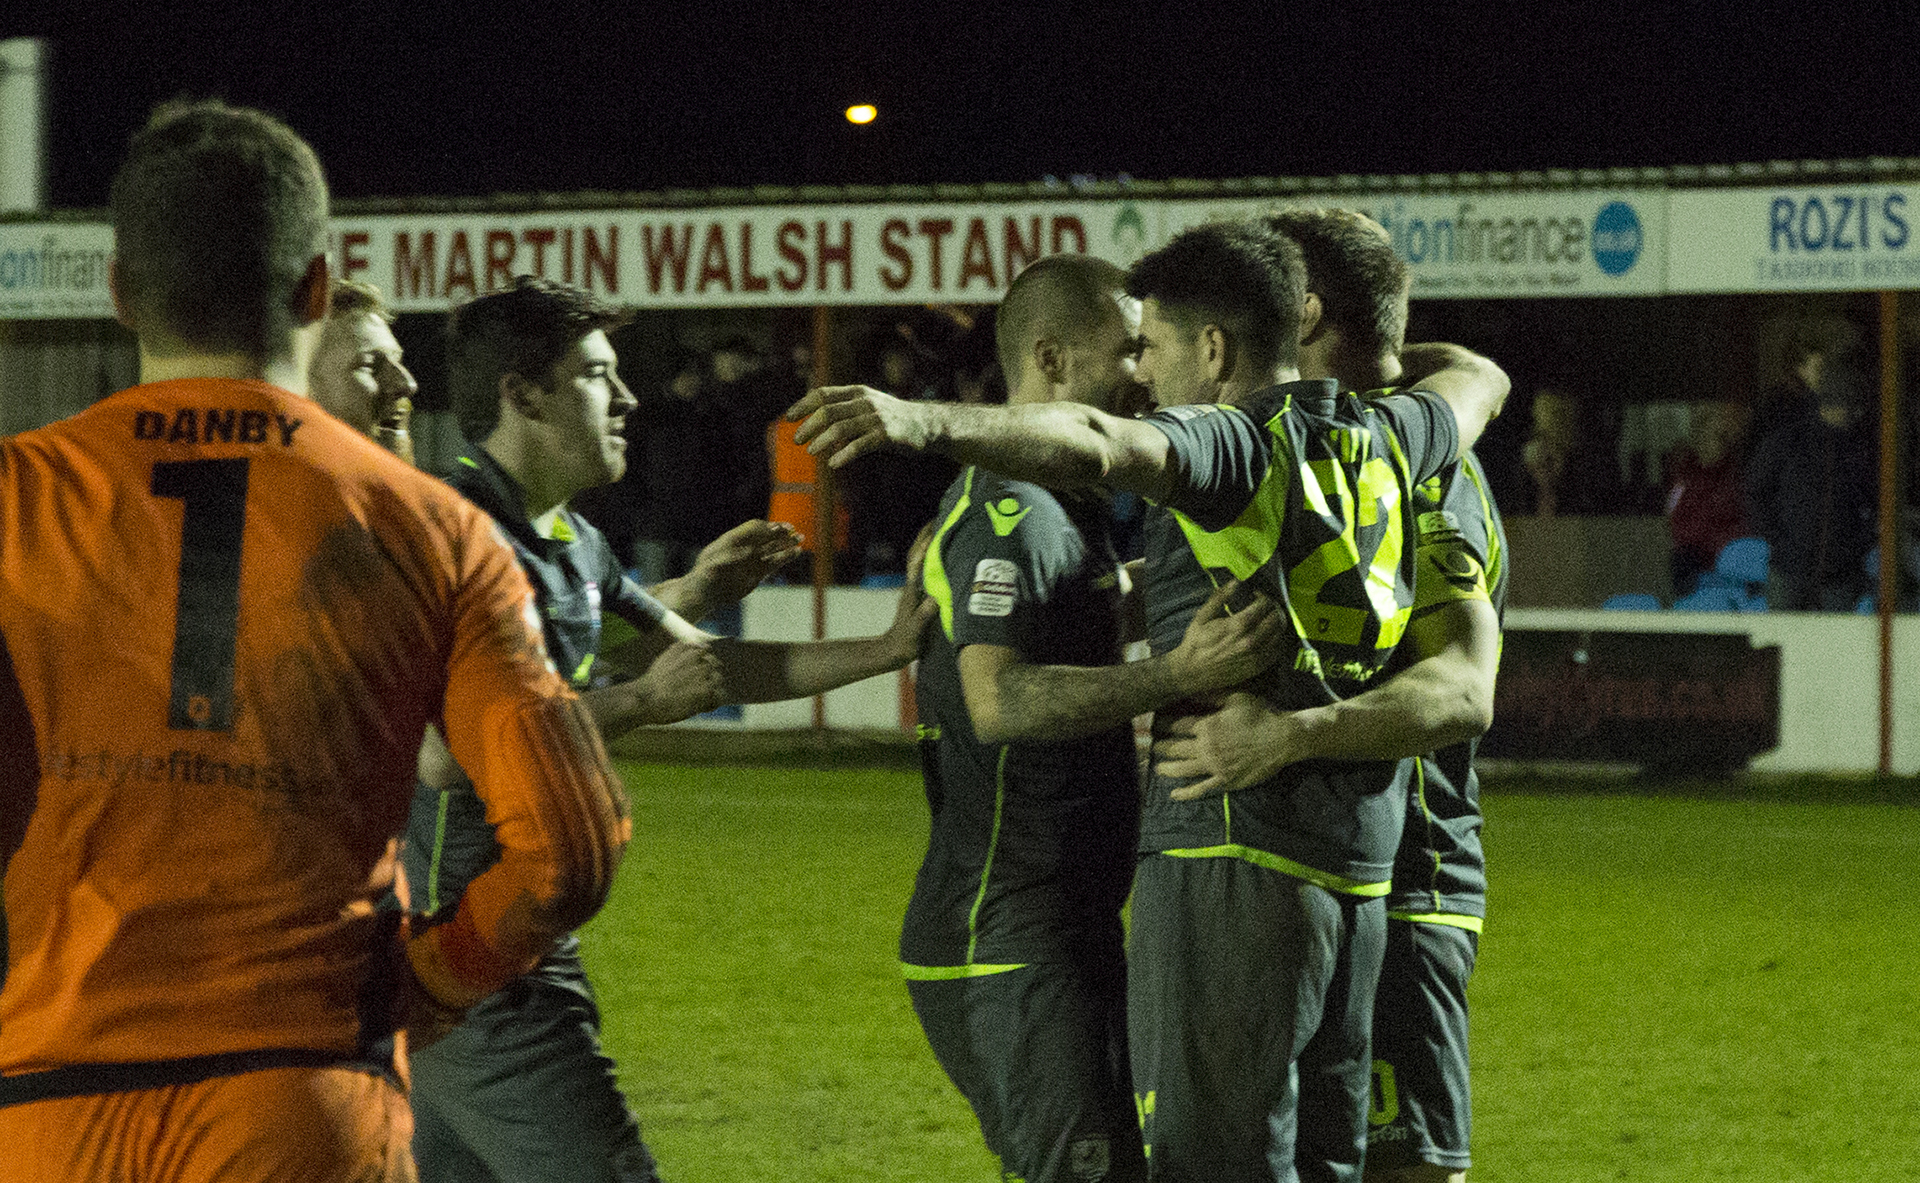 The Nomads celebrate their penalty shootout victory over Prestatyn Town in the JD Welsh Cup - © NCM Media